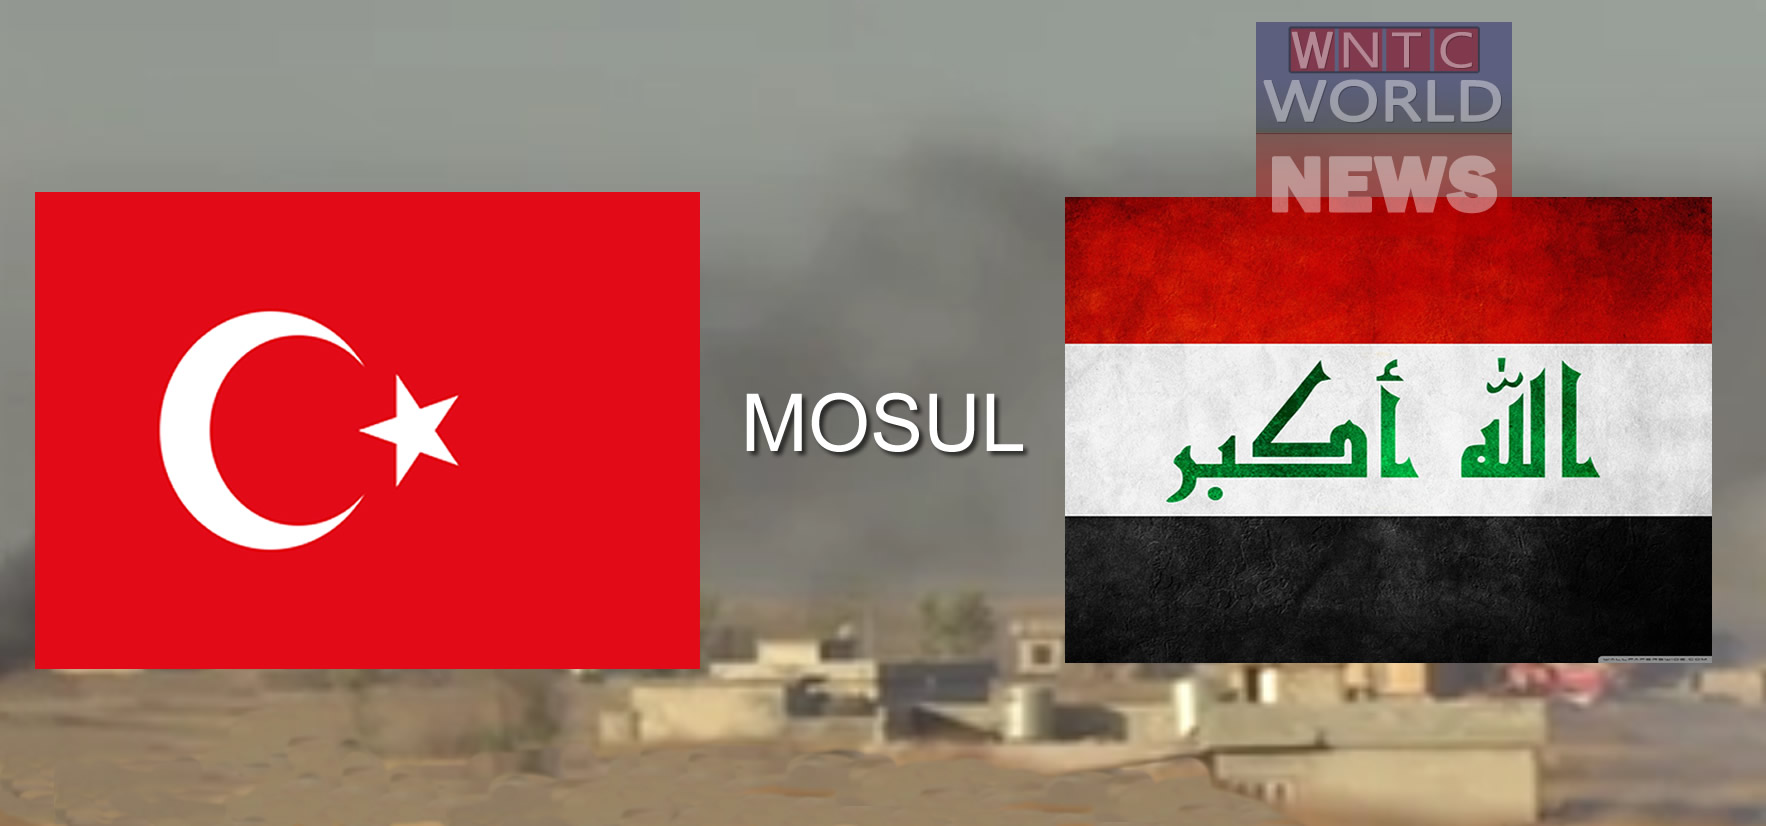 world news tomorrow mosul-fight, digital news paper, news, #news, #news paper,